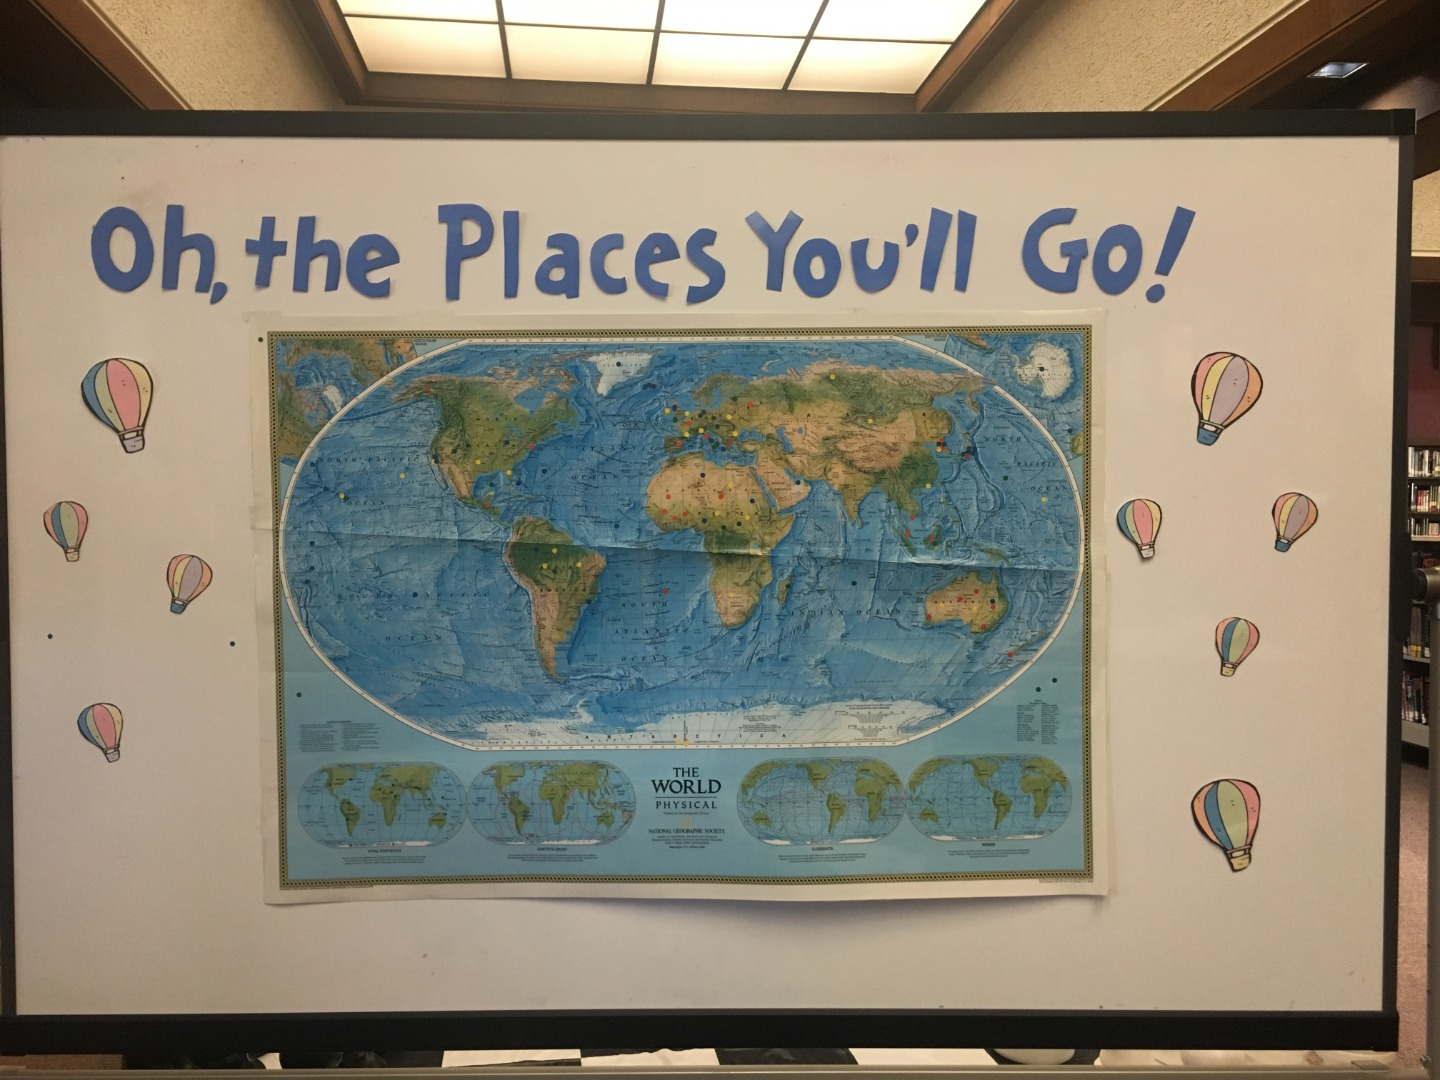 OH, THE PLACES YOU'LL GO!!!